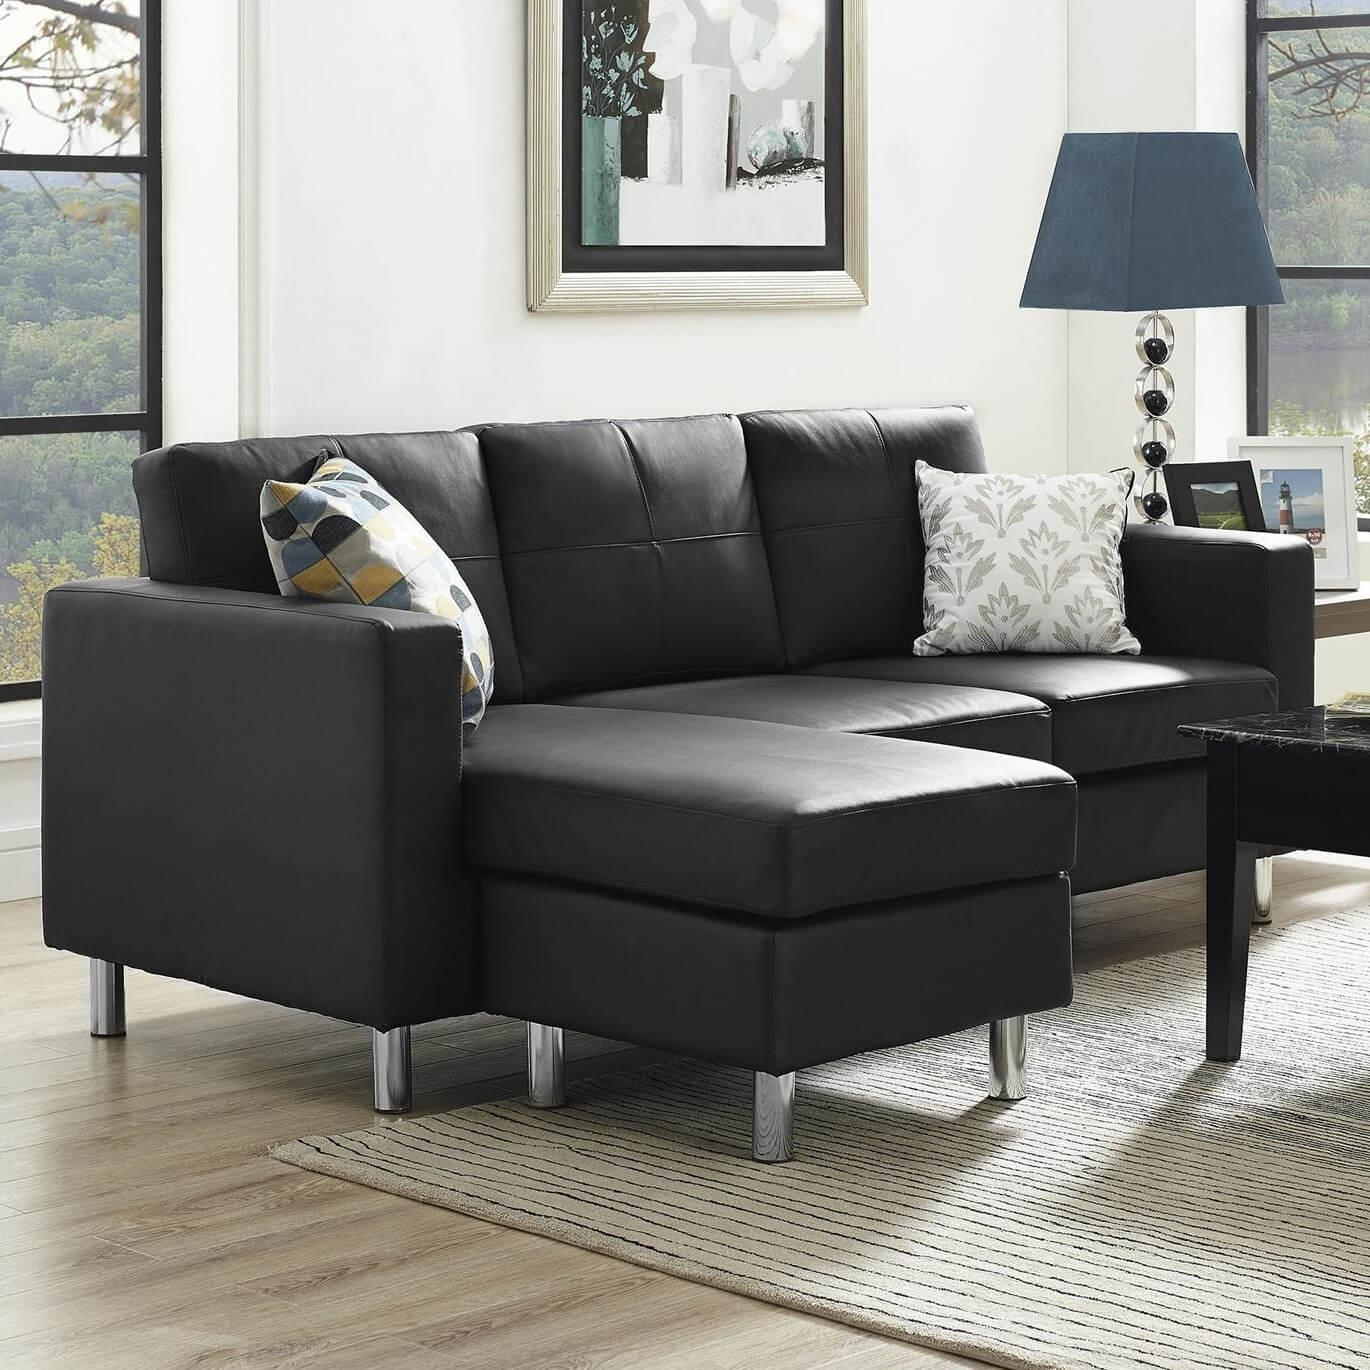 13 Sectional Sofas Under $500 (Several Styles) | Home Stratosphere Throughout Small Scale Leather Sectional Sofas (Image 1 of 20)